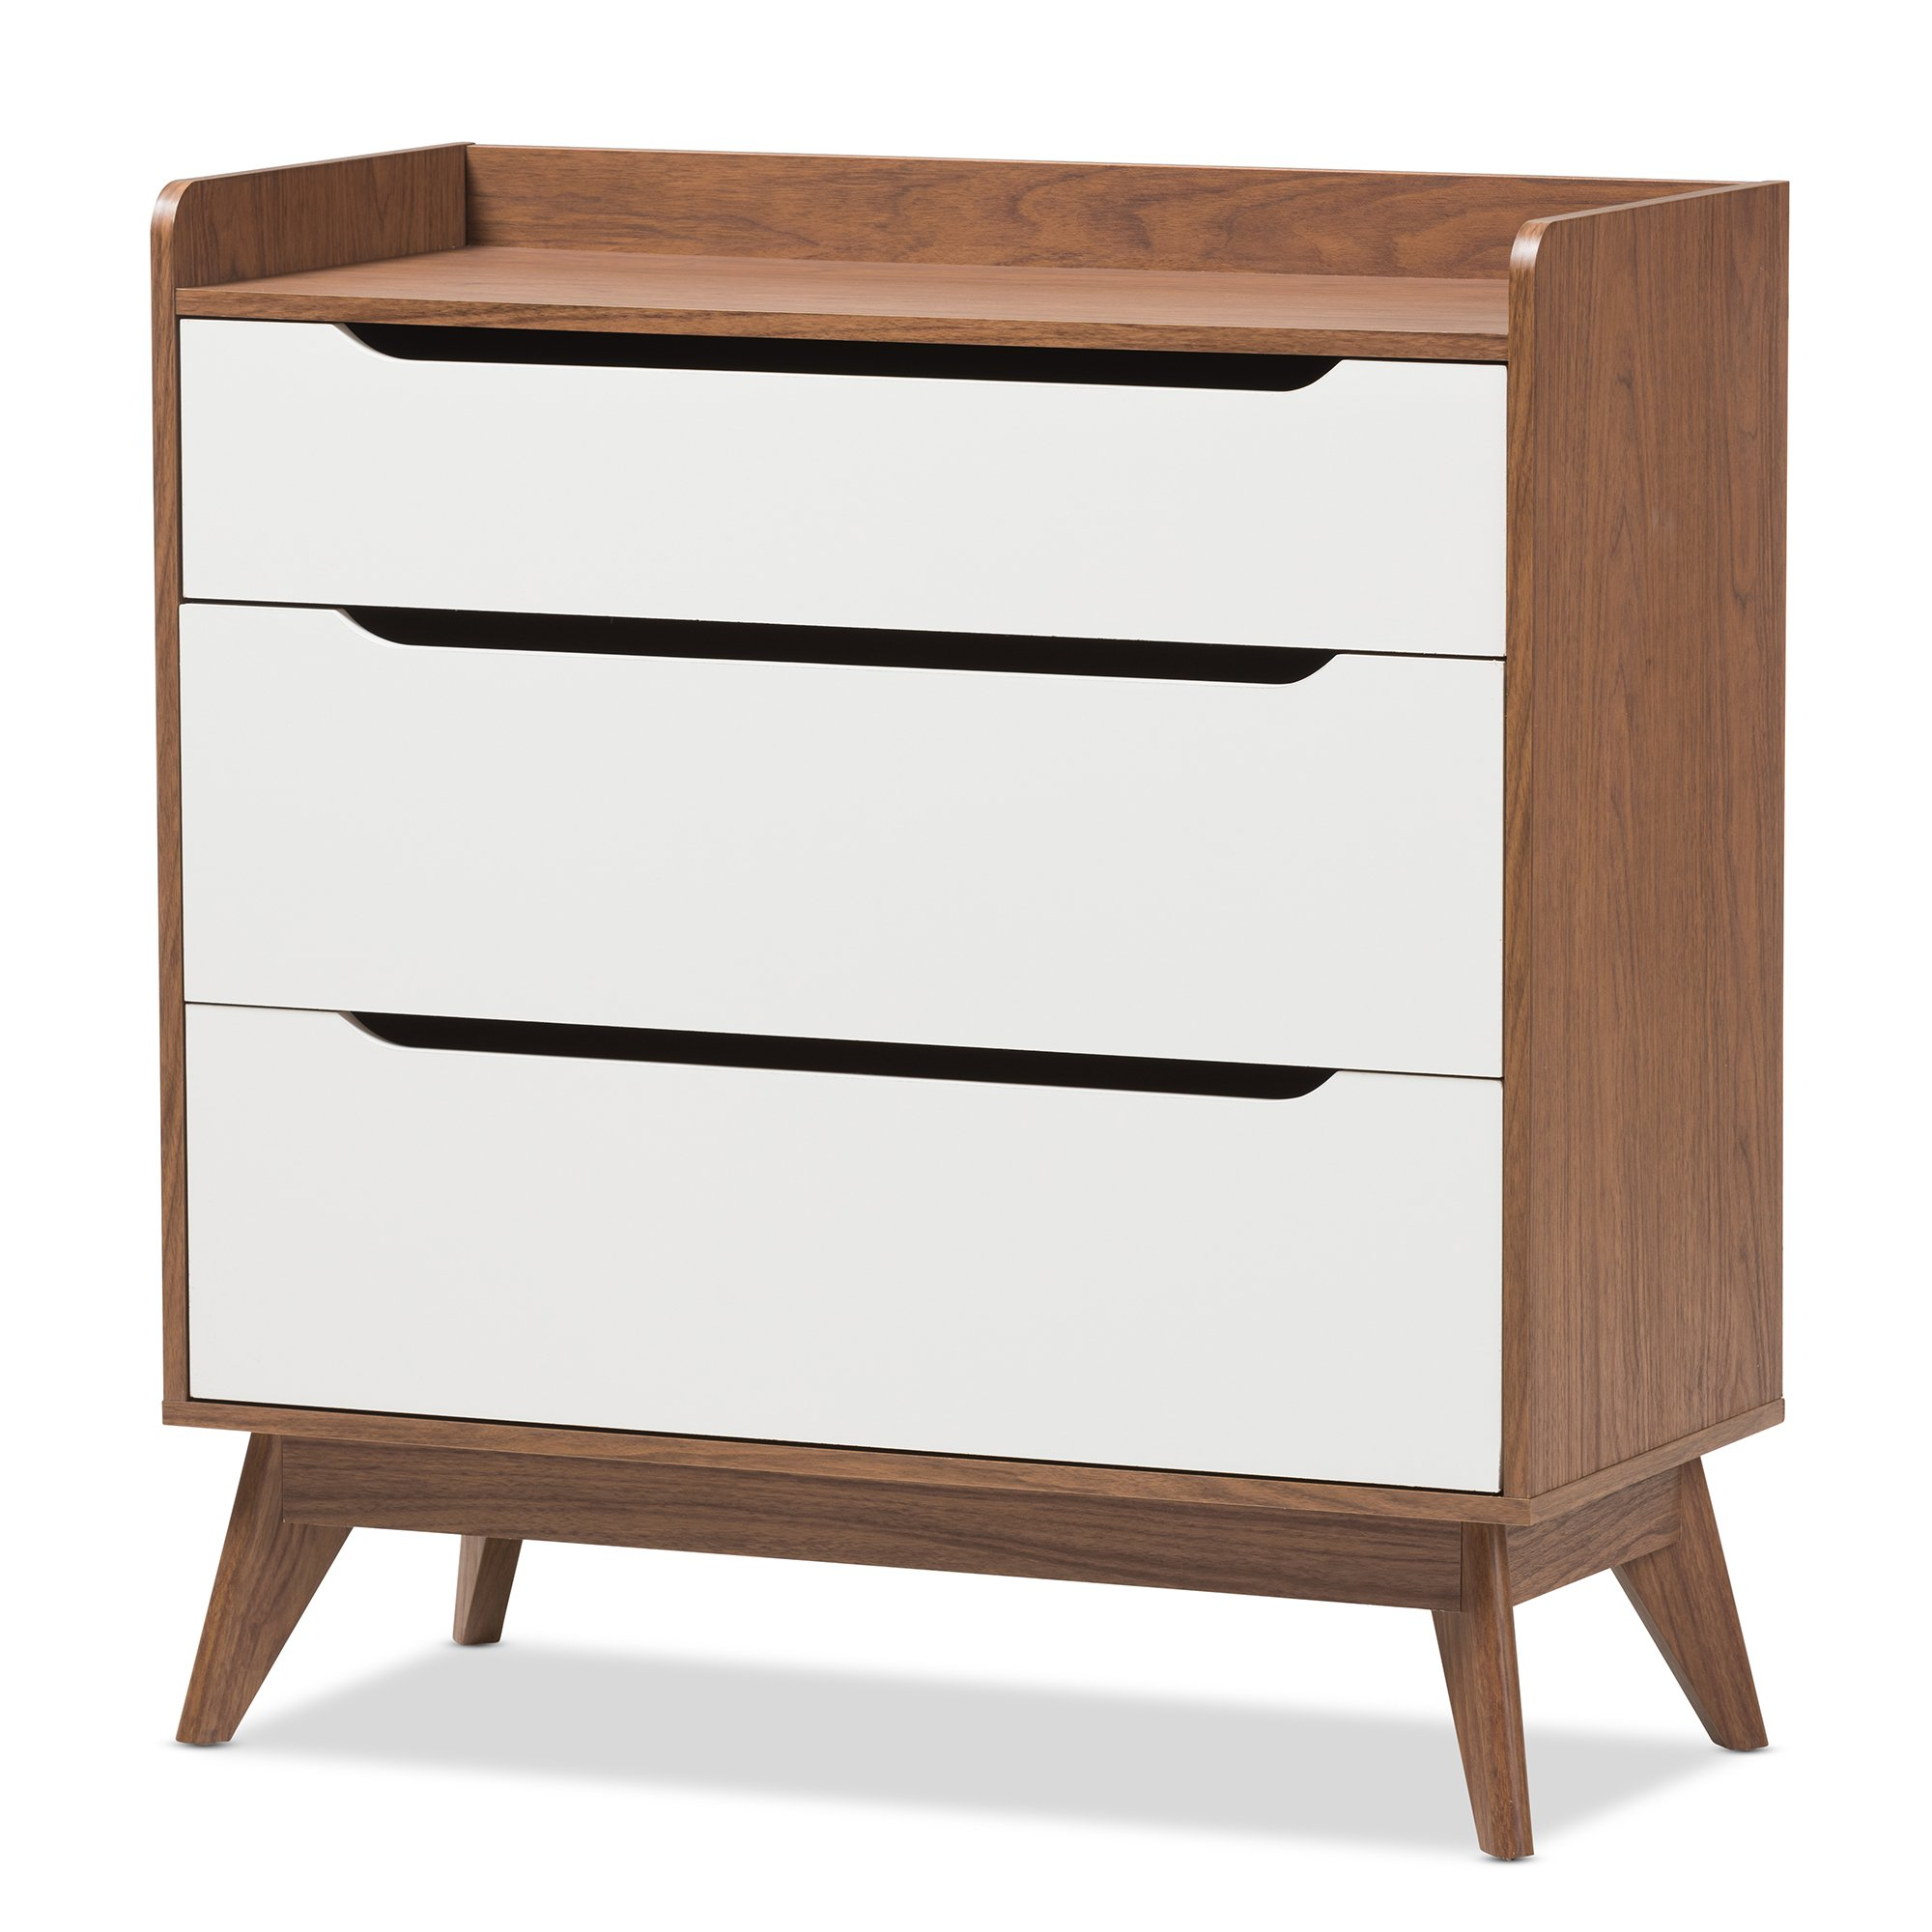 Baxton Studio Chests of Drawers/Bureaus, 3-Drawer Storage Chest, White/Walnut Brown